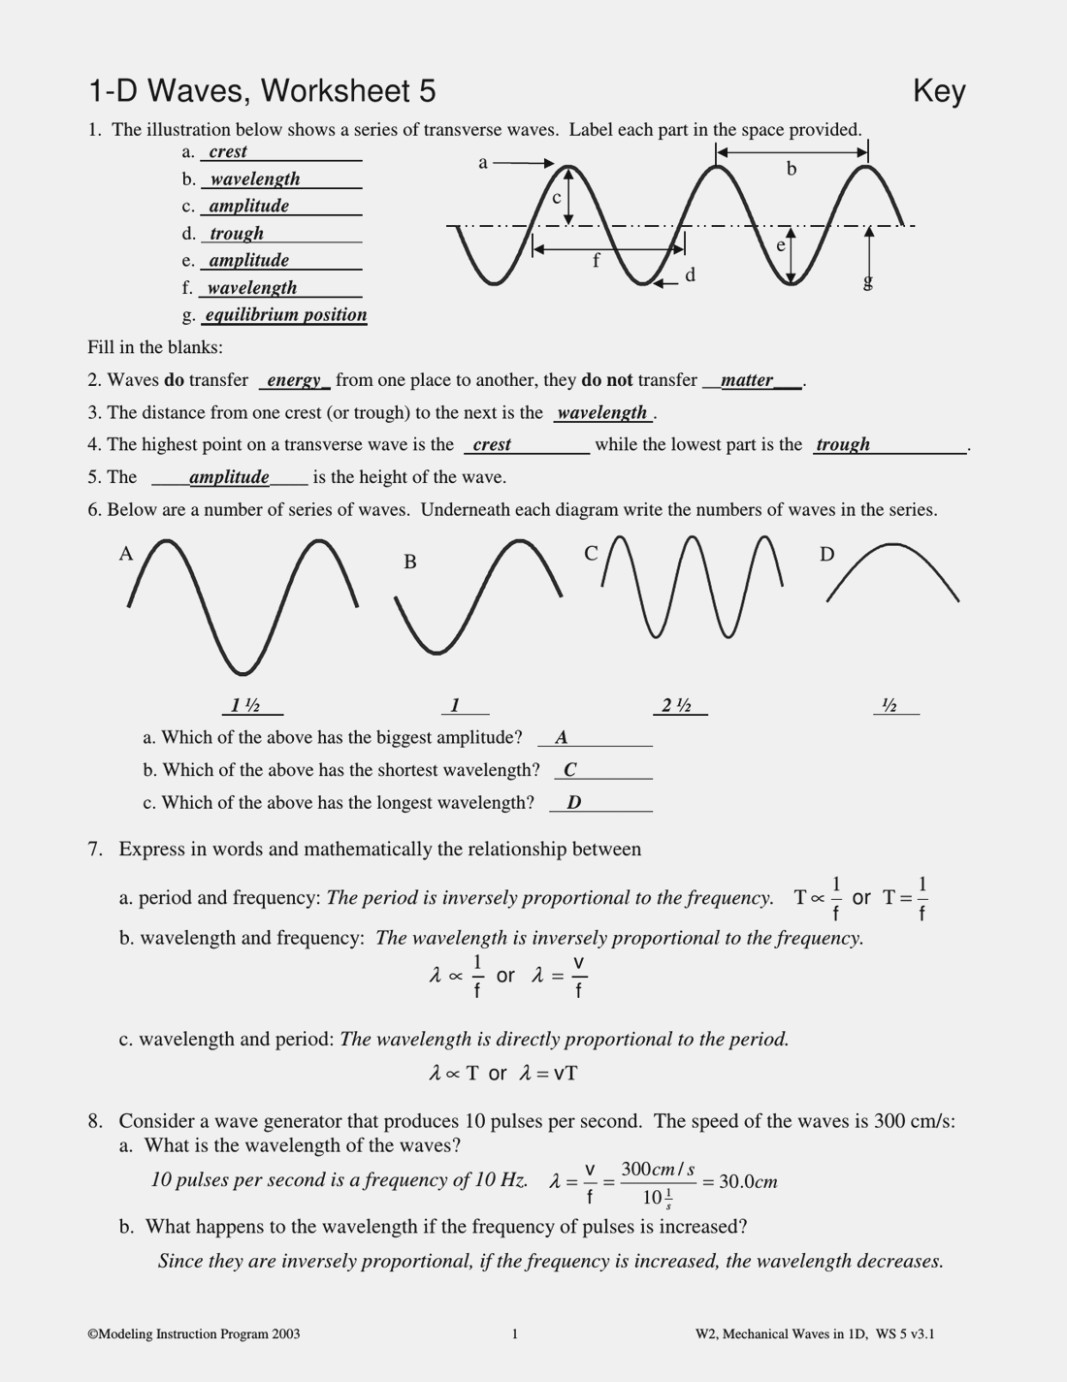 Worksheet Labeling Waves Answers Page 2